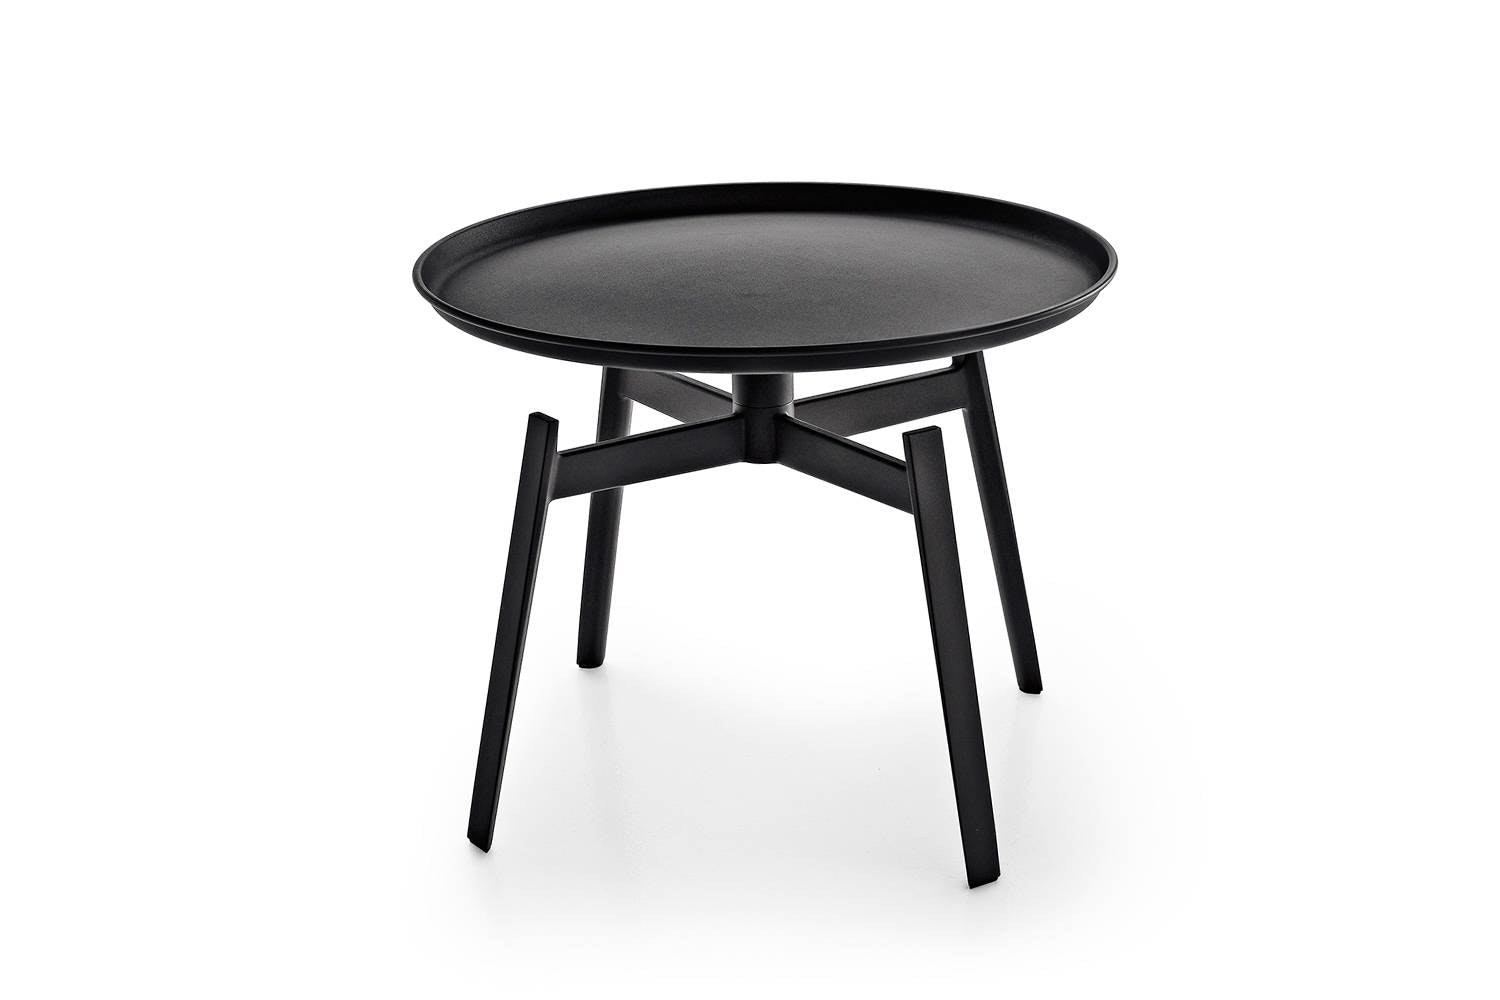 Husk Outdoor Small Table by Patricia Urquiola for B&B Italia